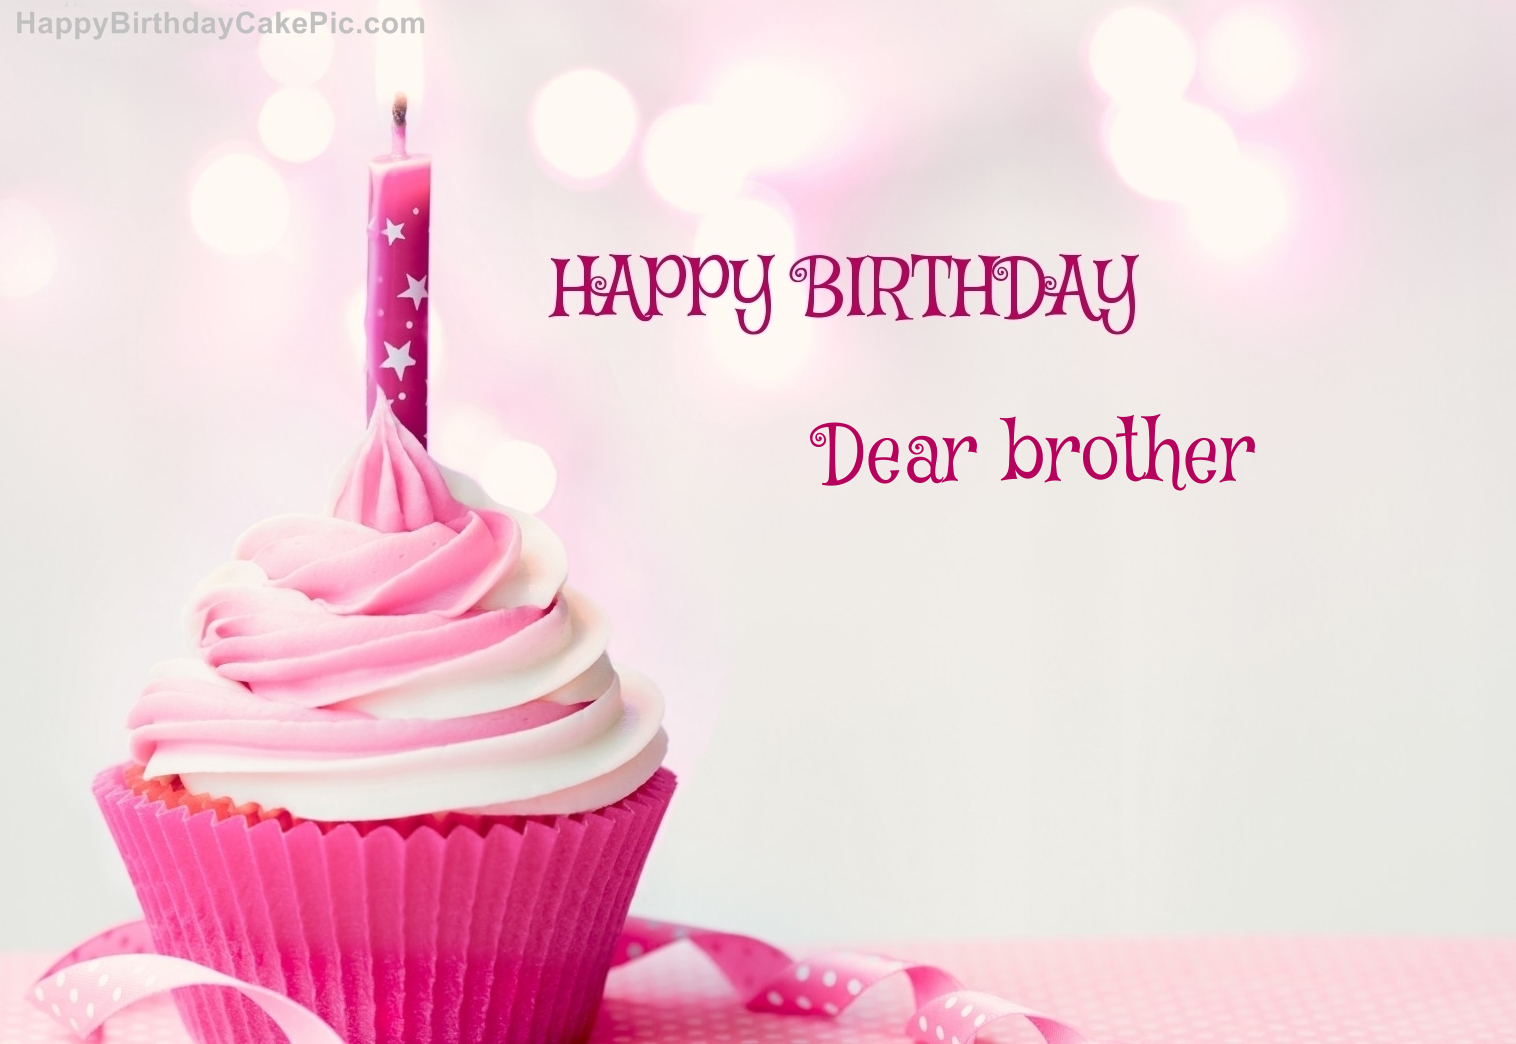 Happy Birthday Cupcake Candle Pink Cake For Dear Brother